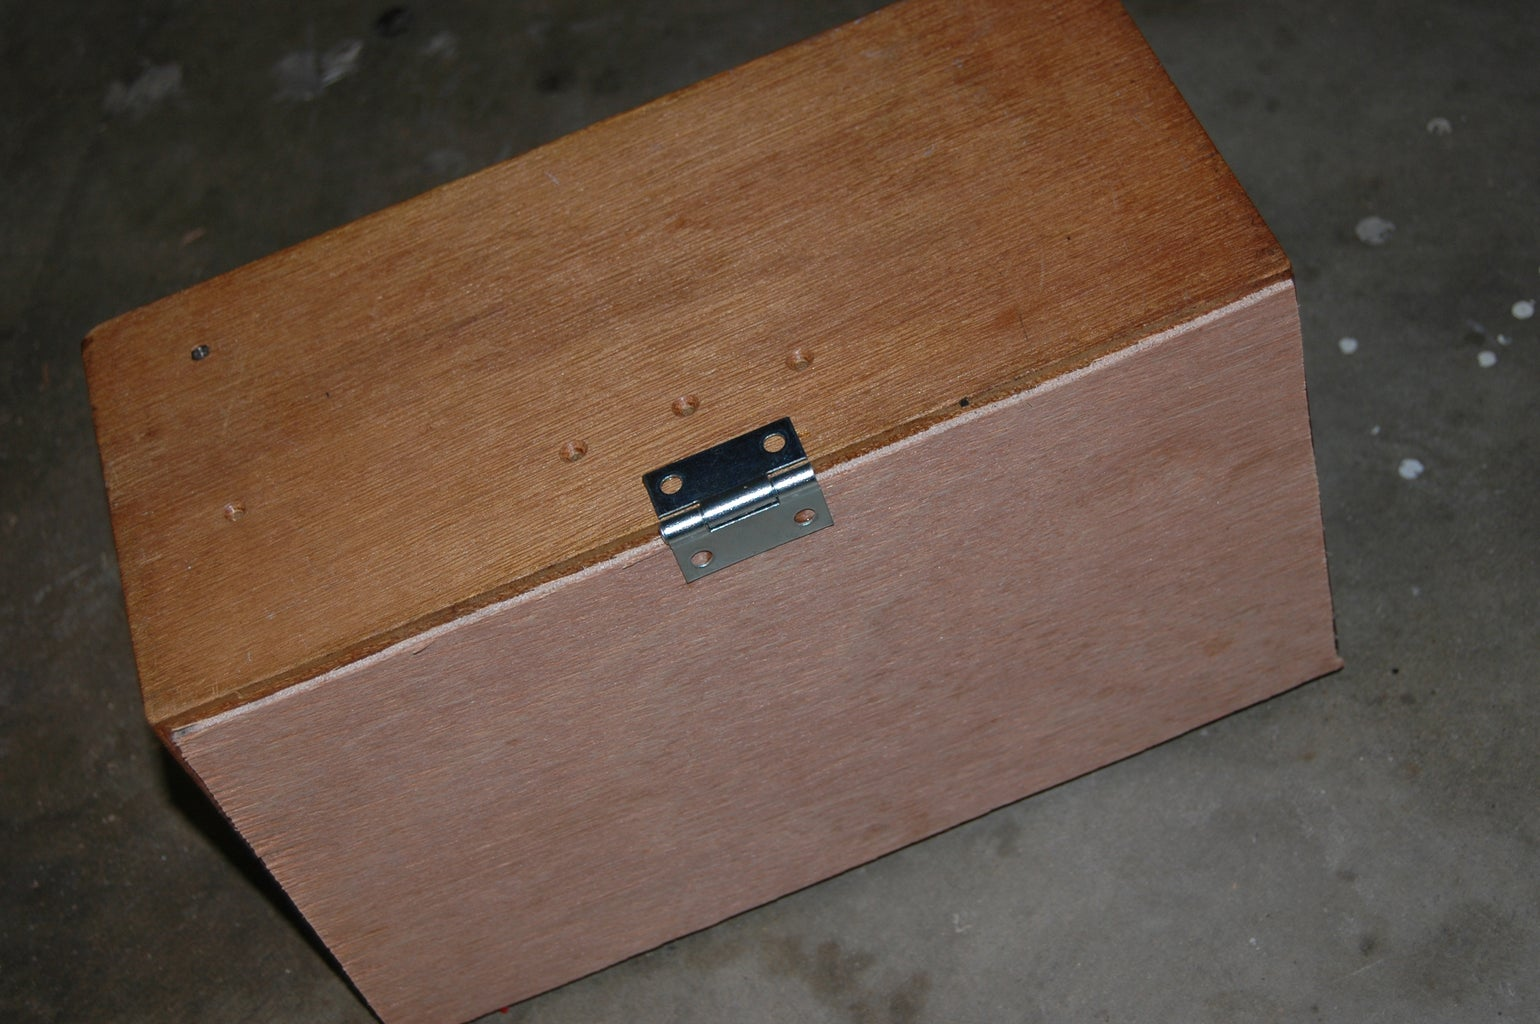 Mount the Amp and Power Supply